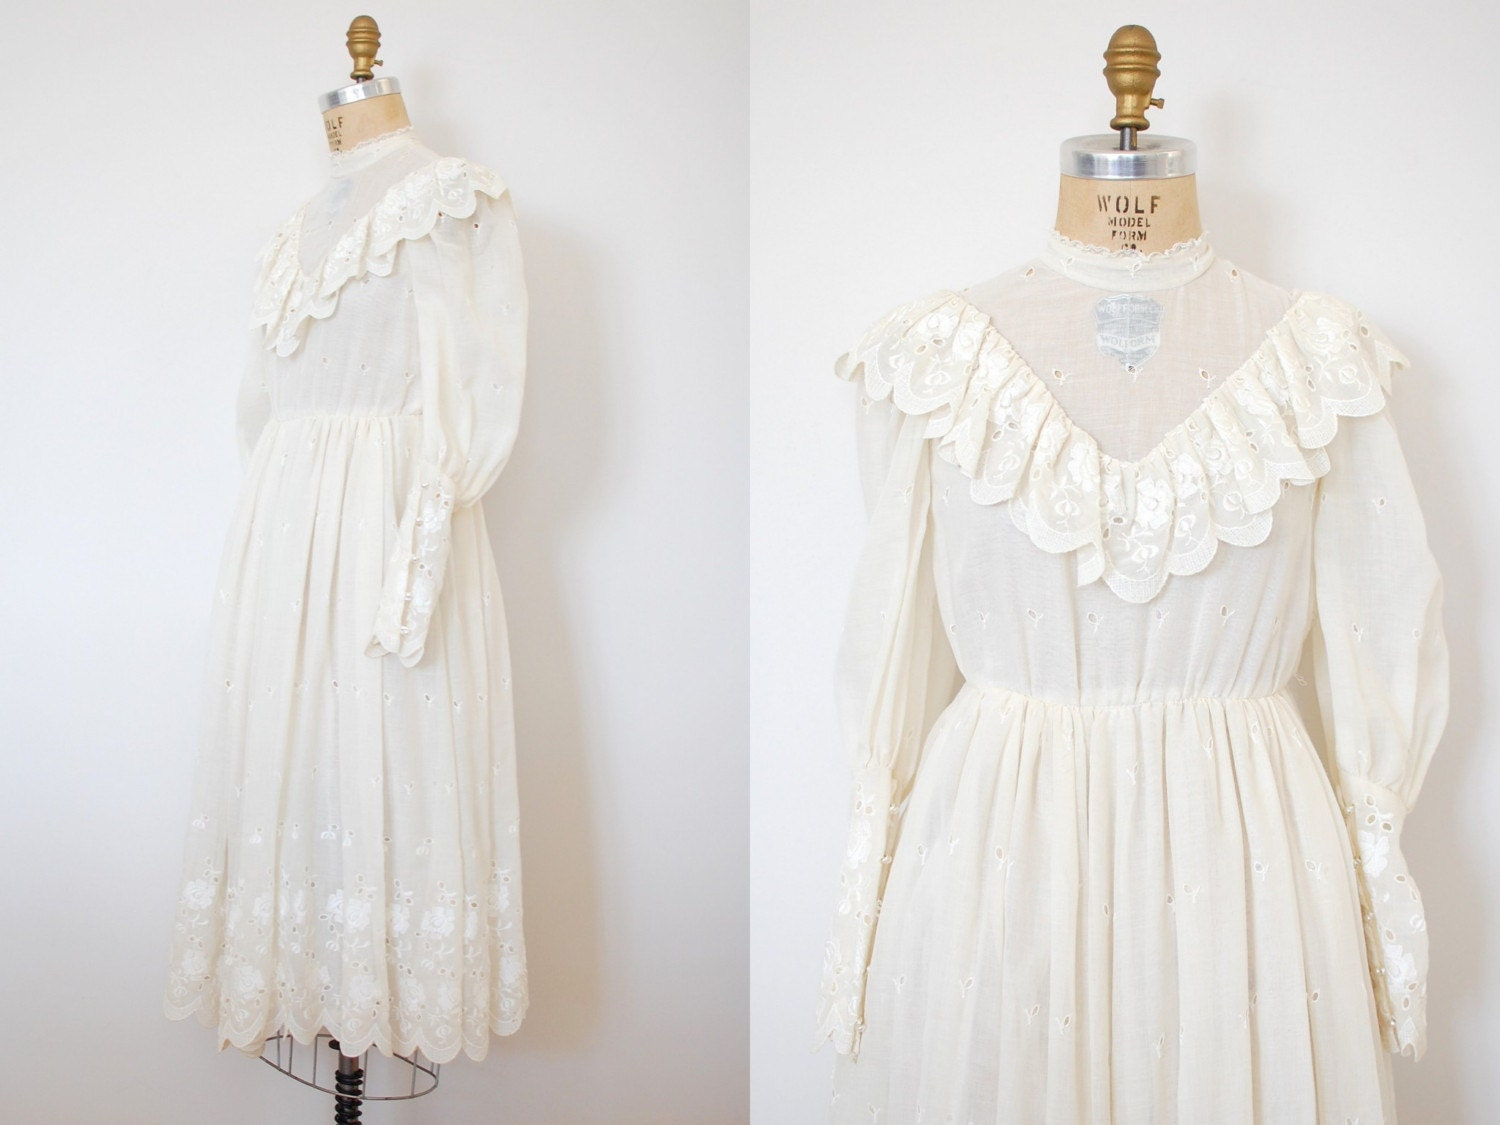 Vintage 1970s the wedding march dress 70s by 13bees on etsy for Laura ingalls wilder wedding dress